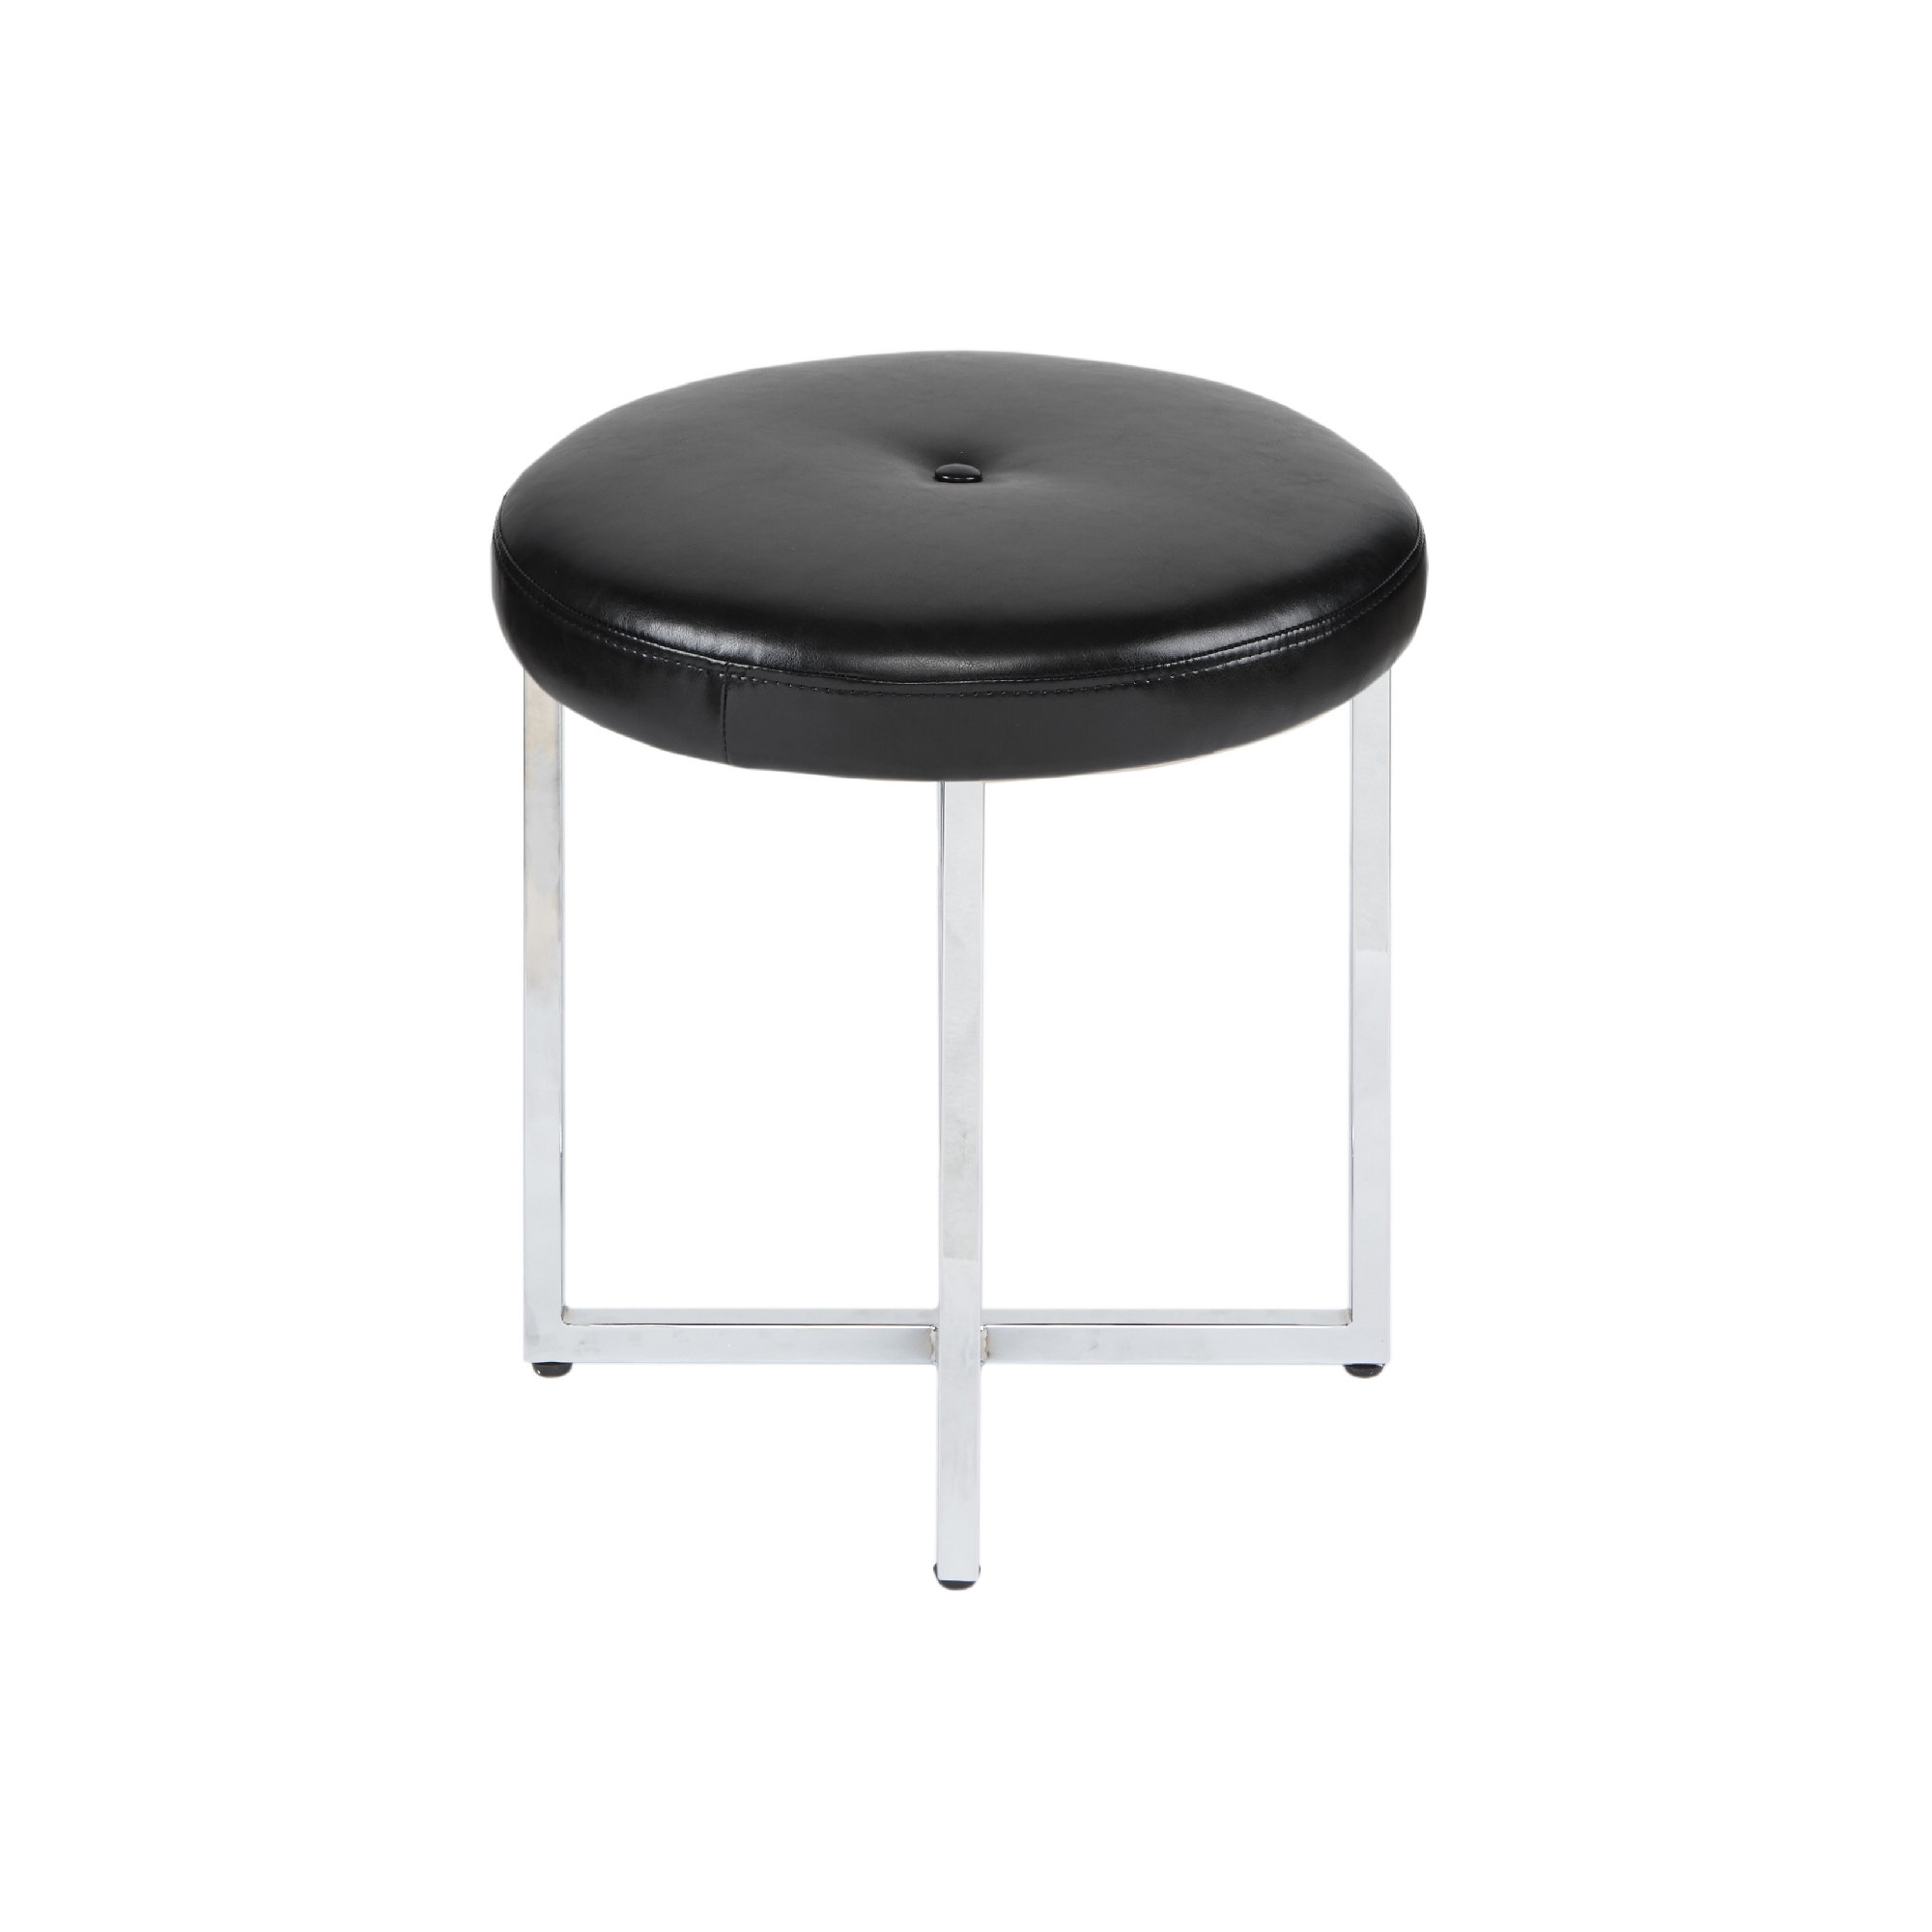 Widely Used Blanton Round Cocktail Tables Pertaining To Ebern Designs Blanton Ottoman (View 8 of 20)